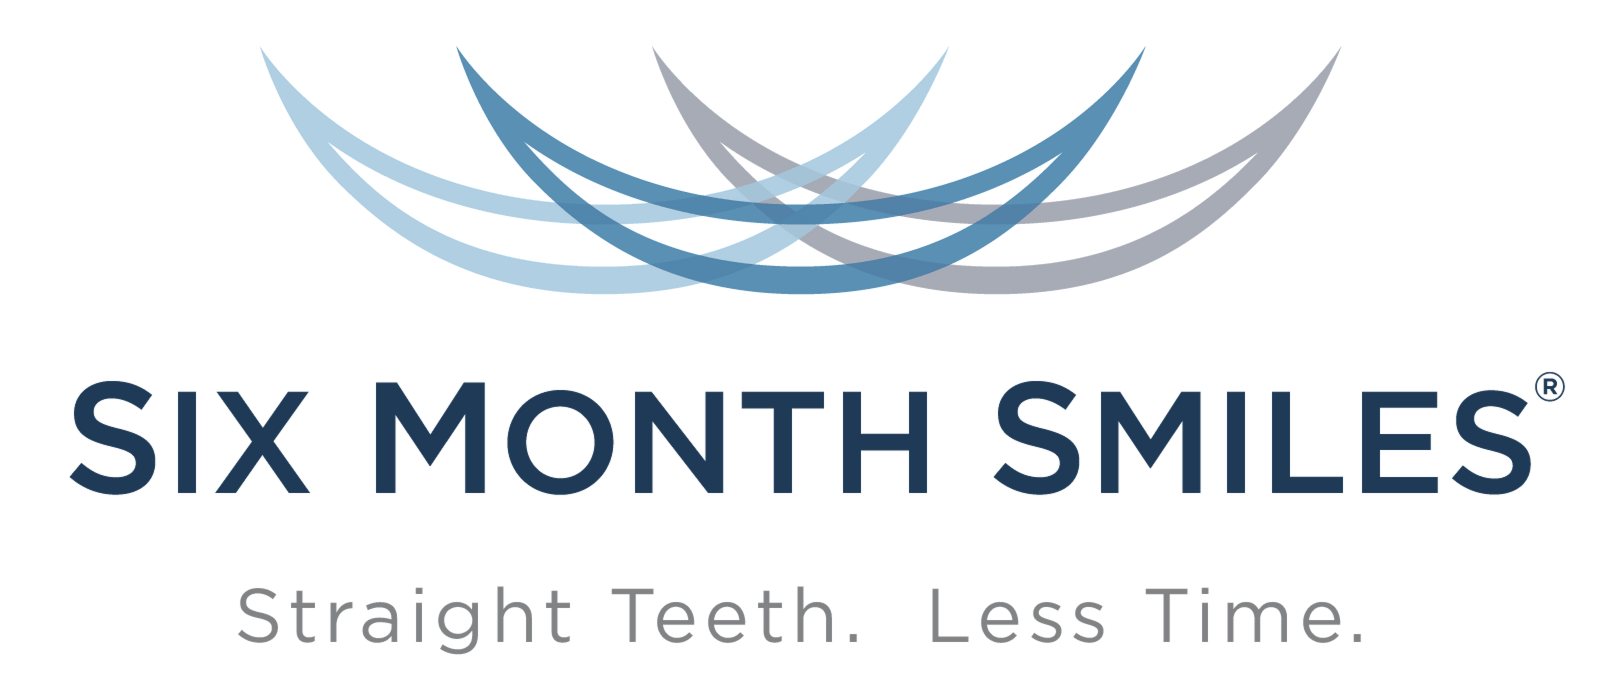 Six Month Smiles LLC